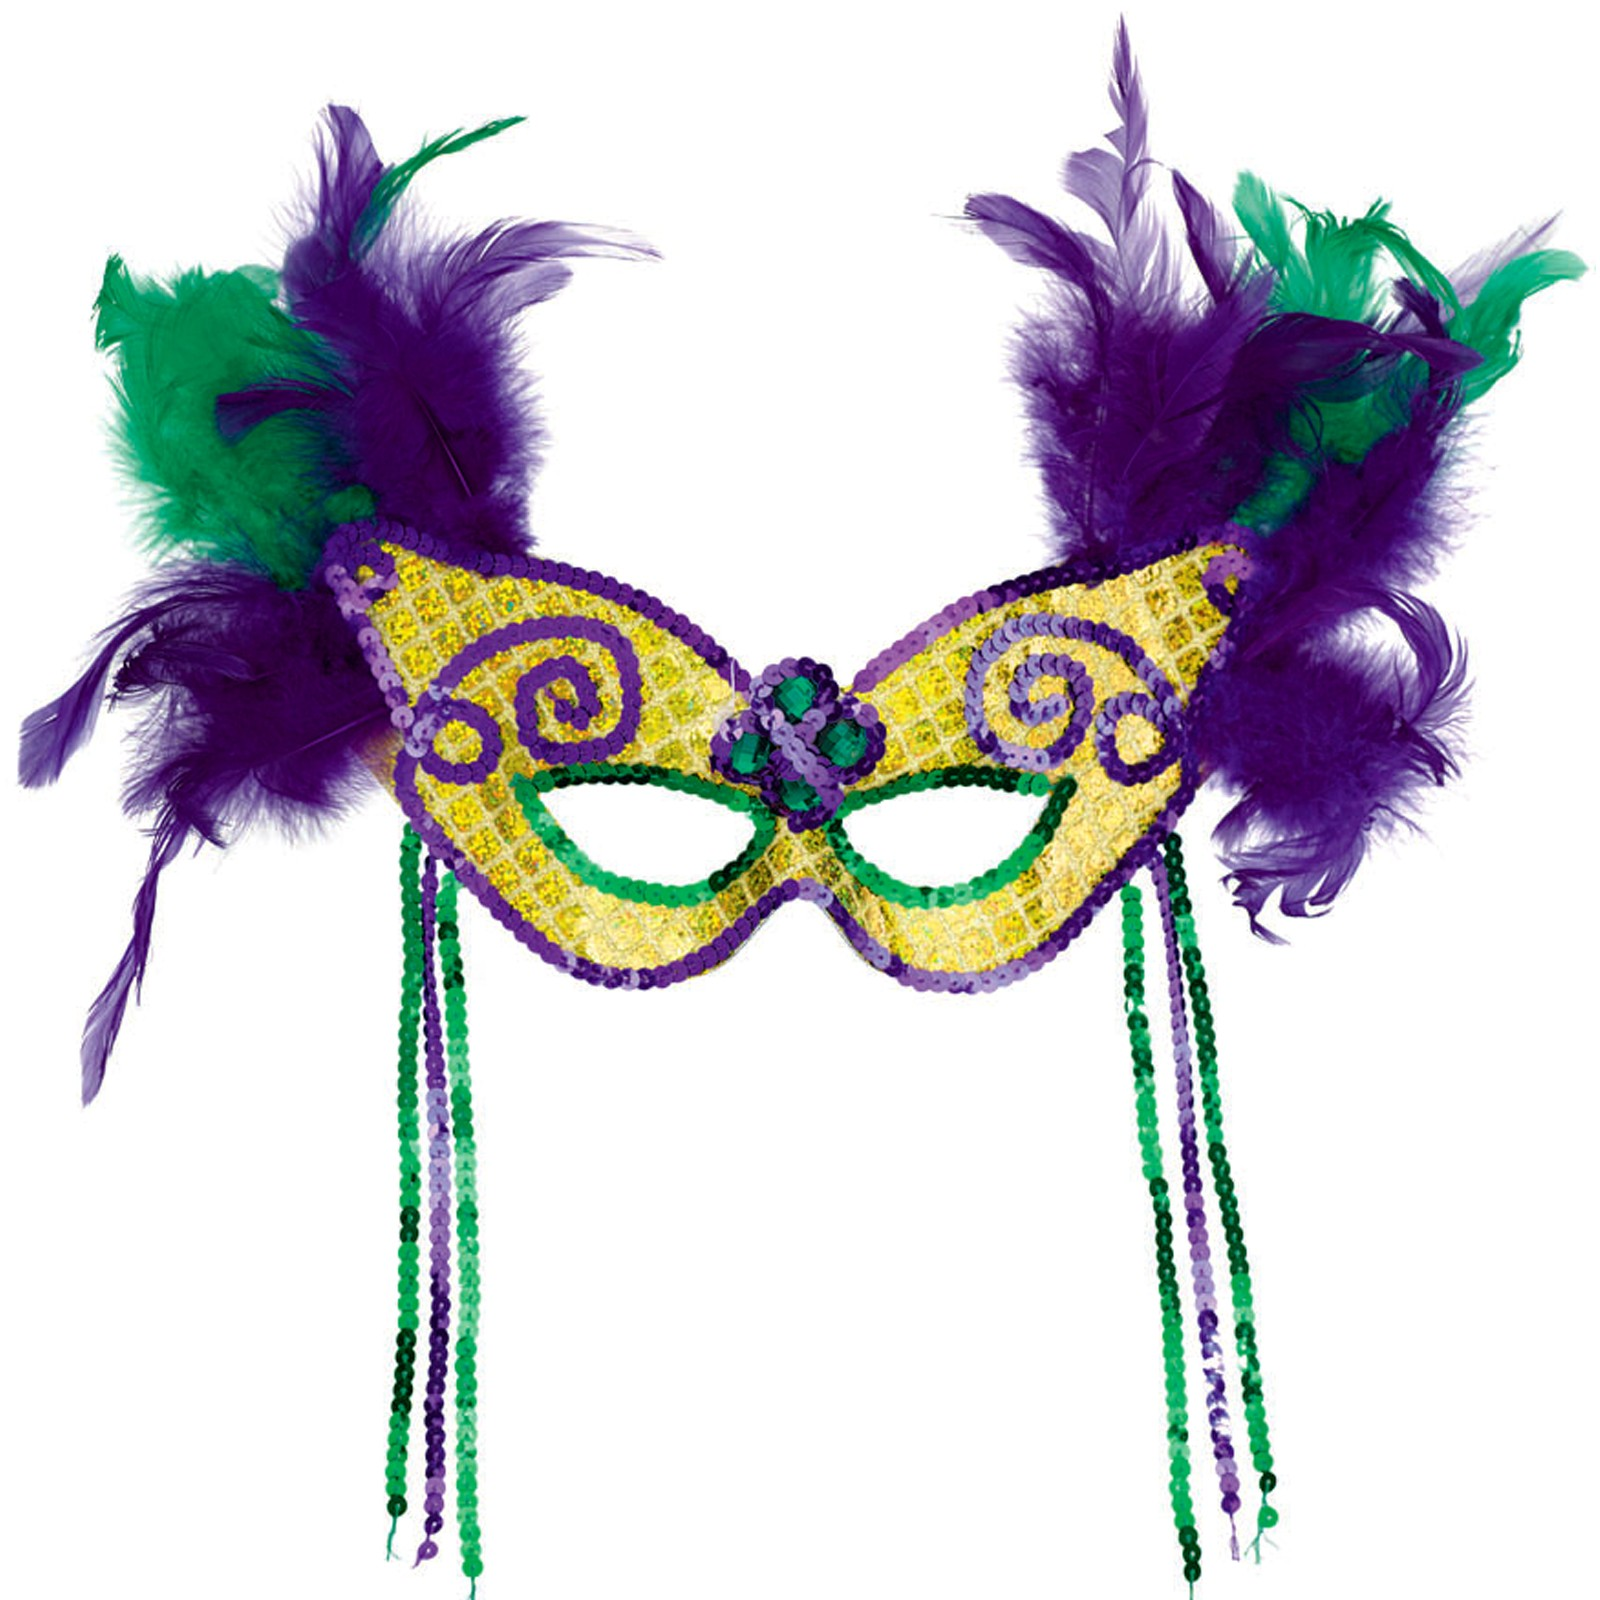 mardi gras carnival masks 2013 latest   beautiful masks animated happy new year clipart 2018 Happy New Year Animated Greetings